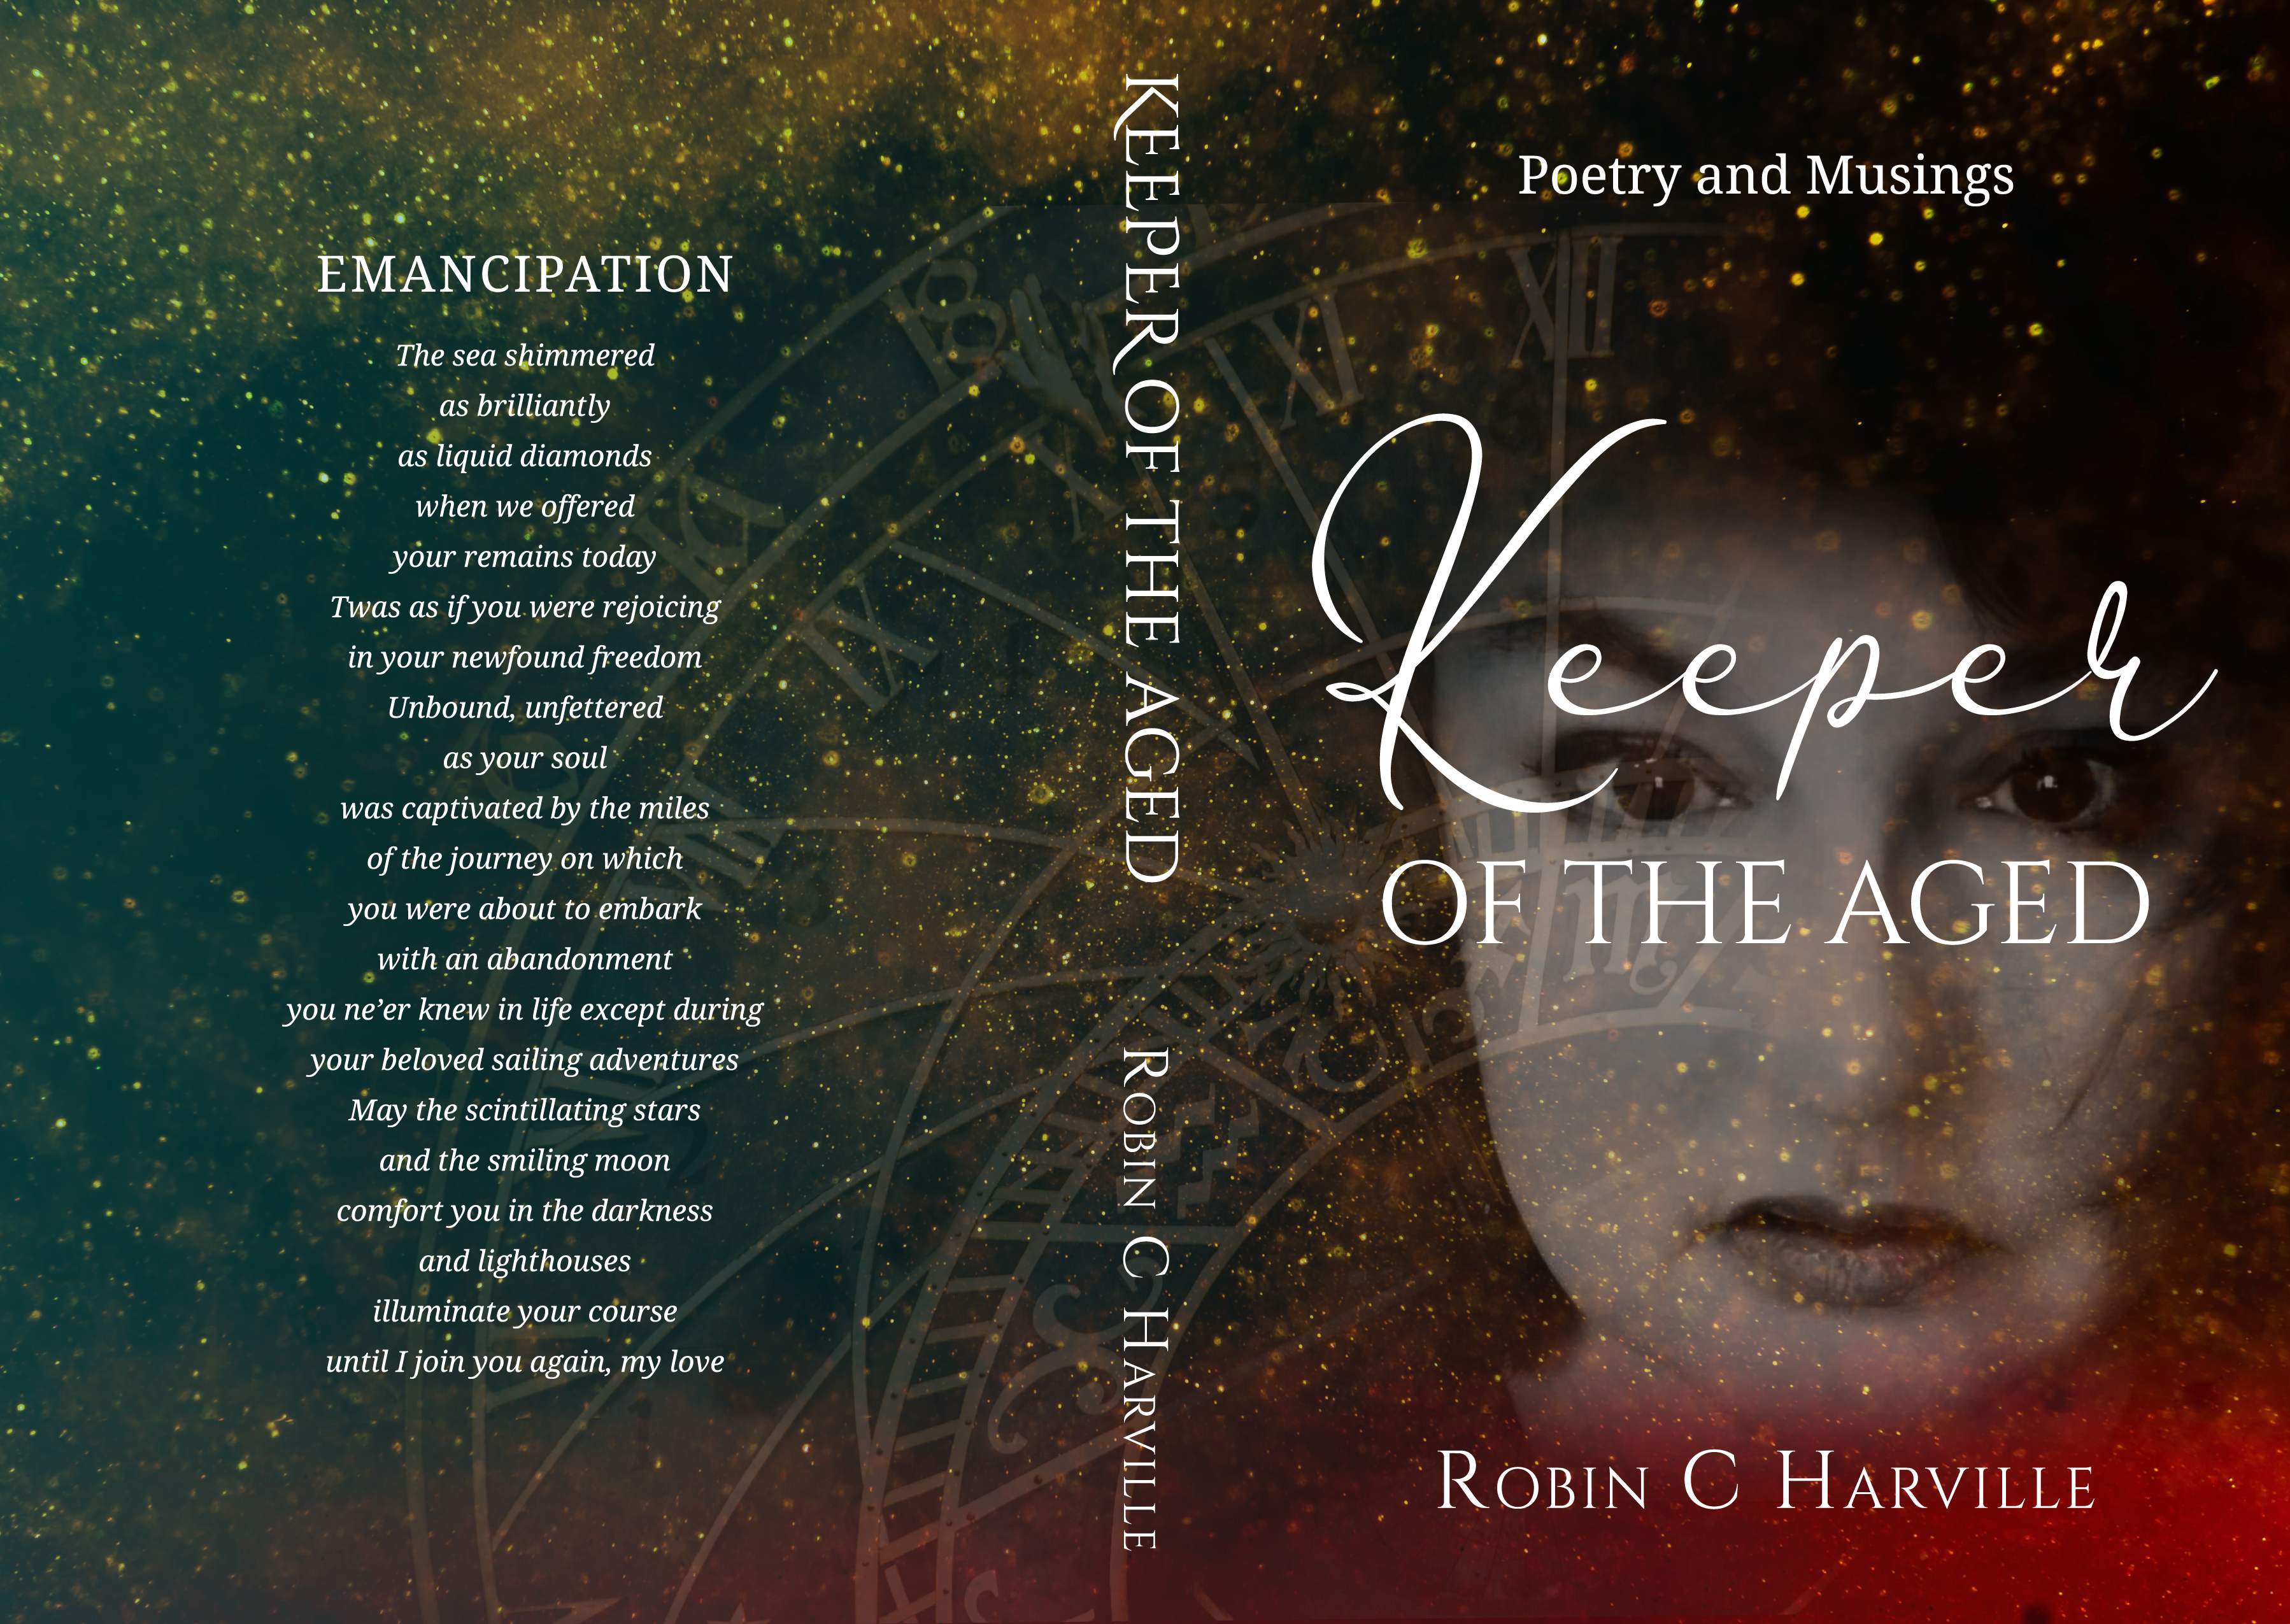 Pack a Prolific Punch Design for Keeper of the Aged: Poetry and Musings Book Cover